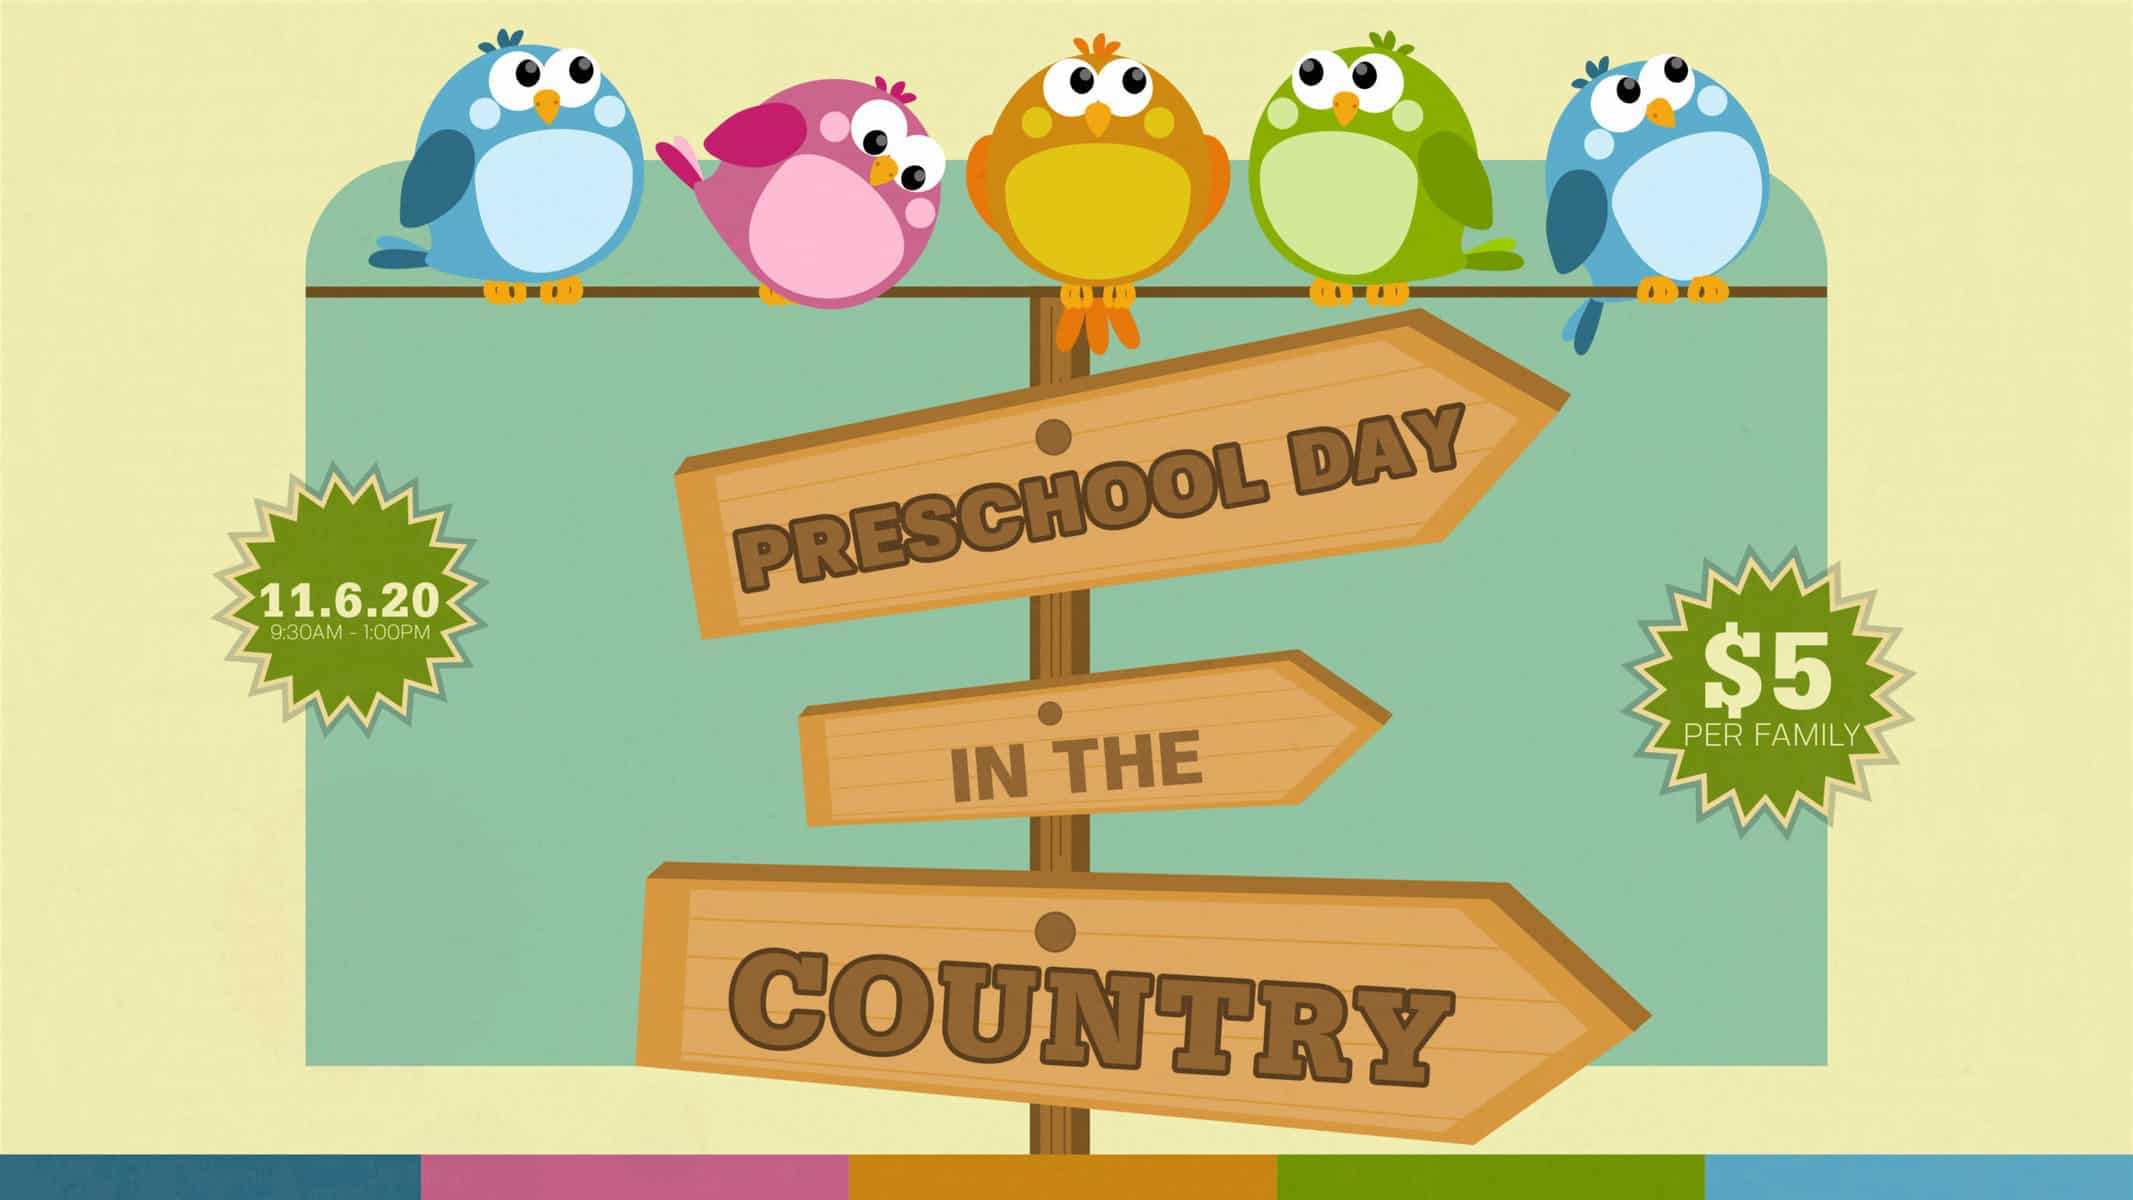 preschool-day-in-the-country